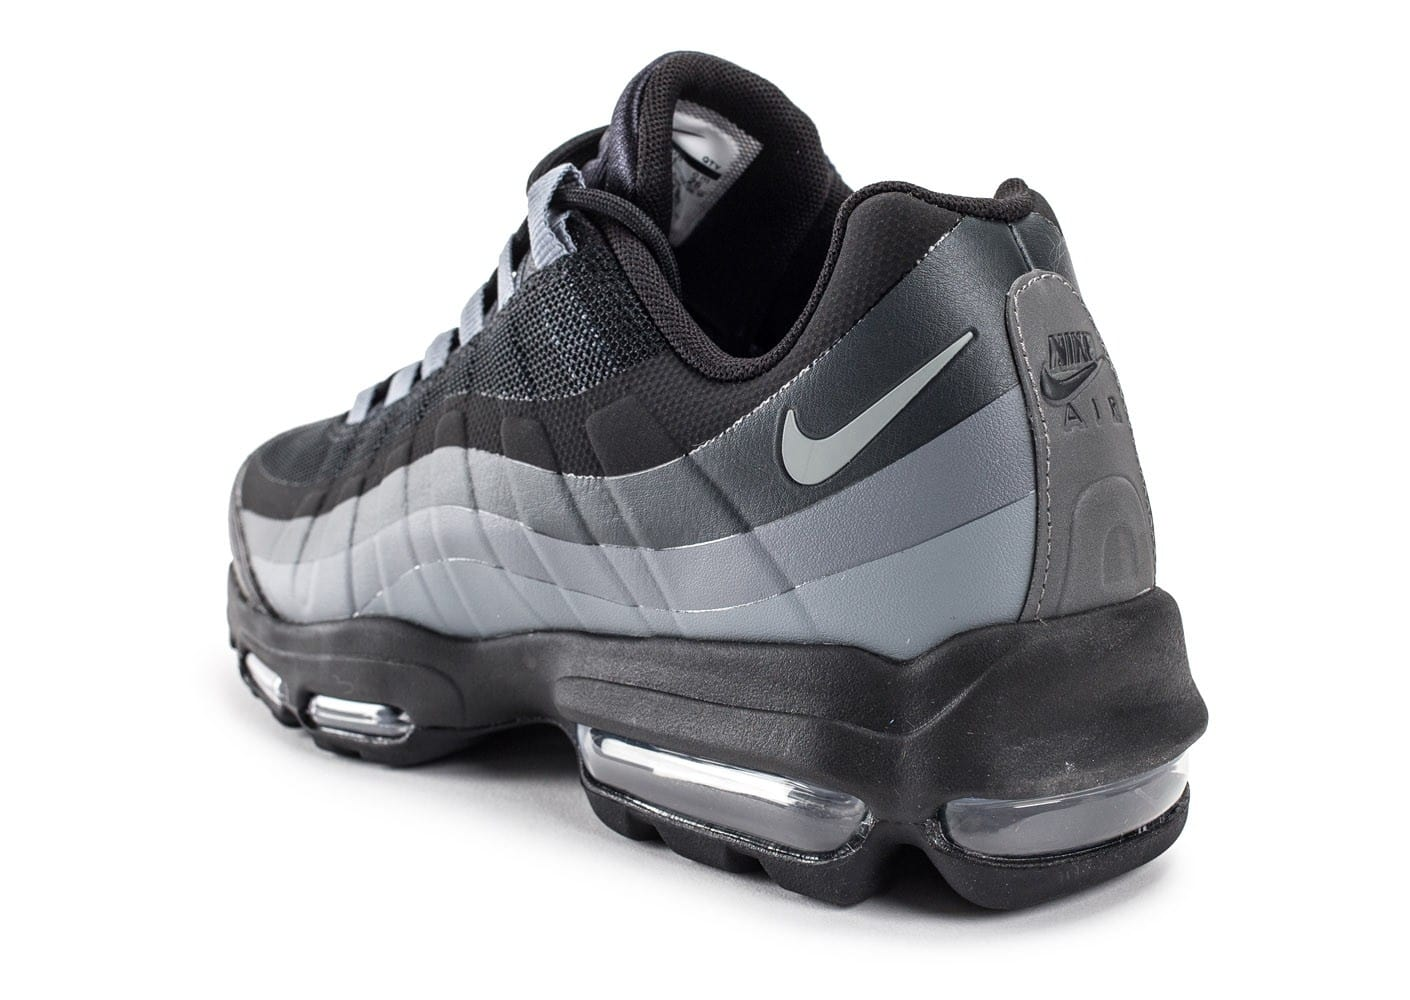 nike air max 95 ultra essential noire chaussures homme chausport. Black Bedroom Furniture Sets. Home Design Ideas